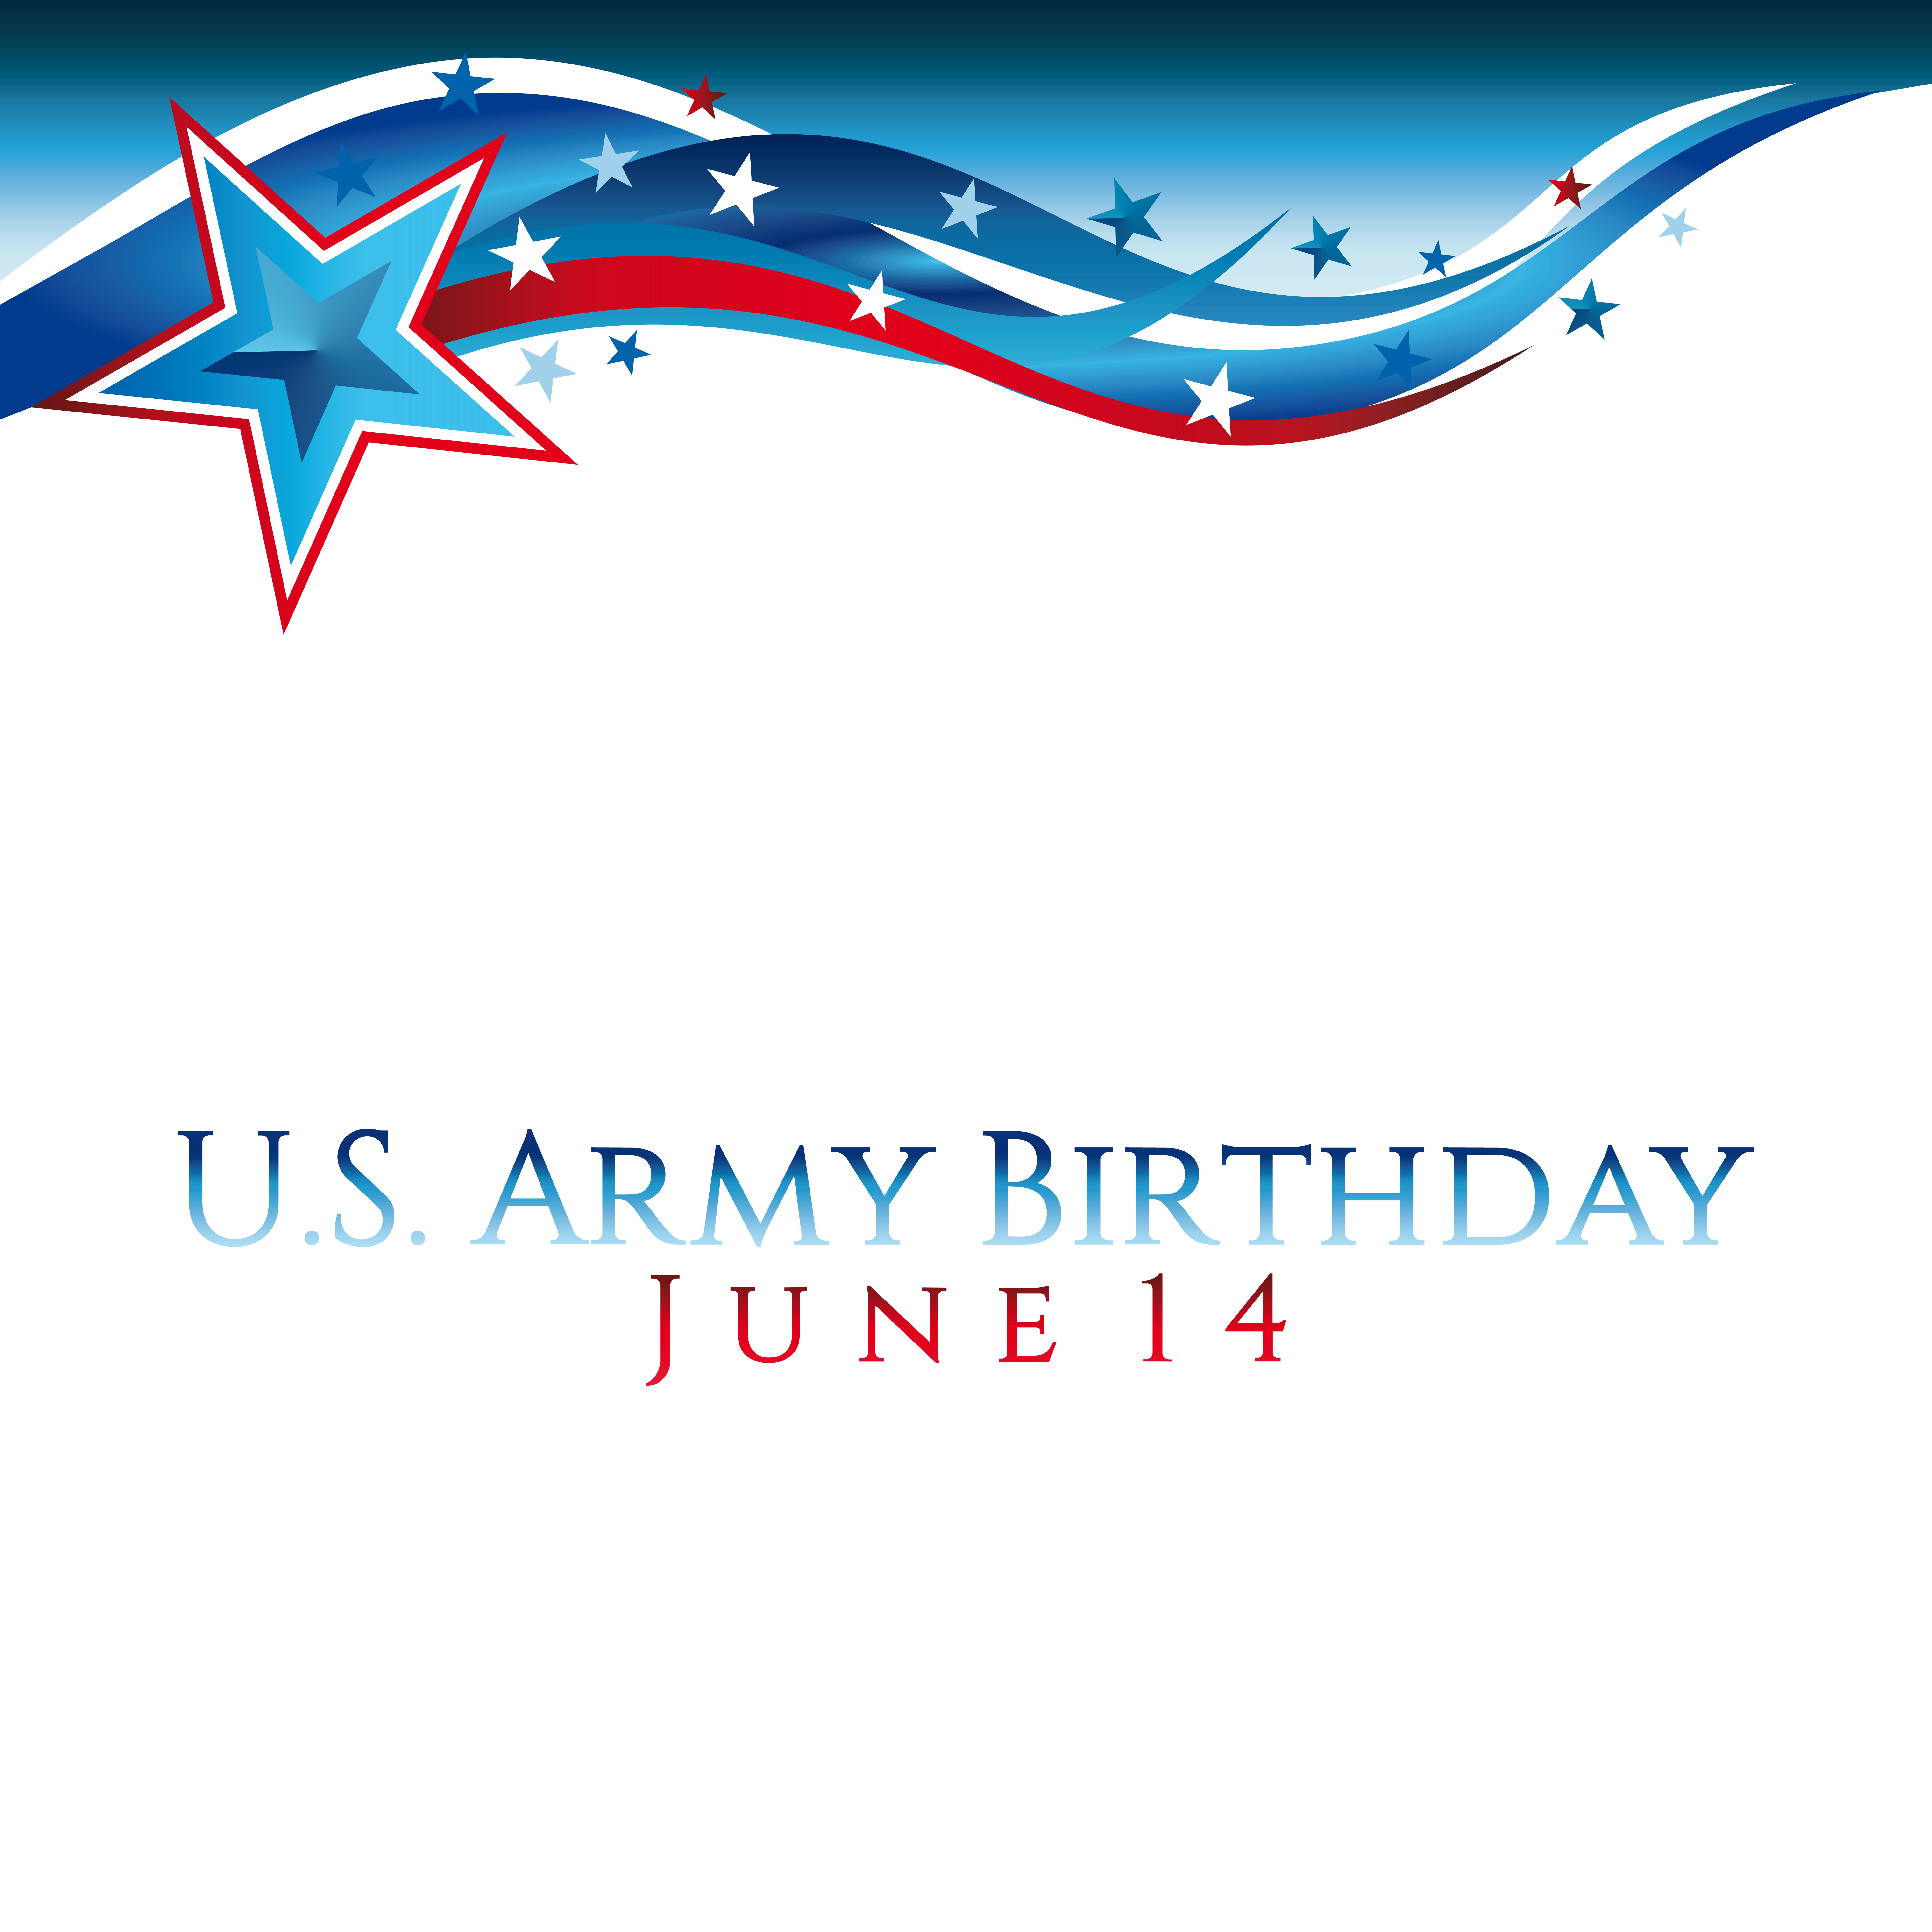 Happy Birthday To The Us Army June 14, 2017 How To Endorse A Check For  Mobile Deposit Usaa